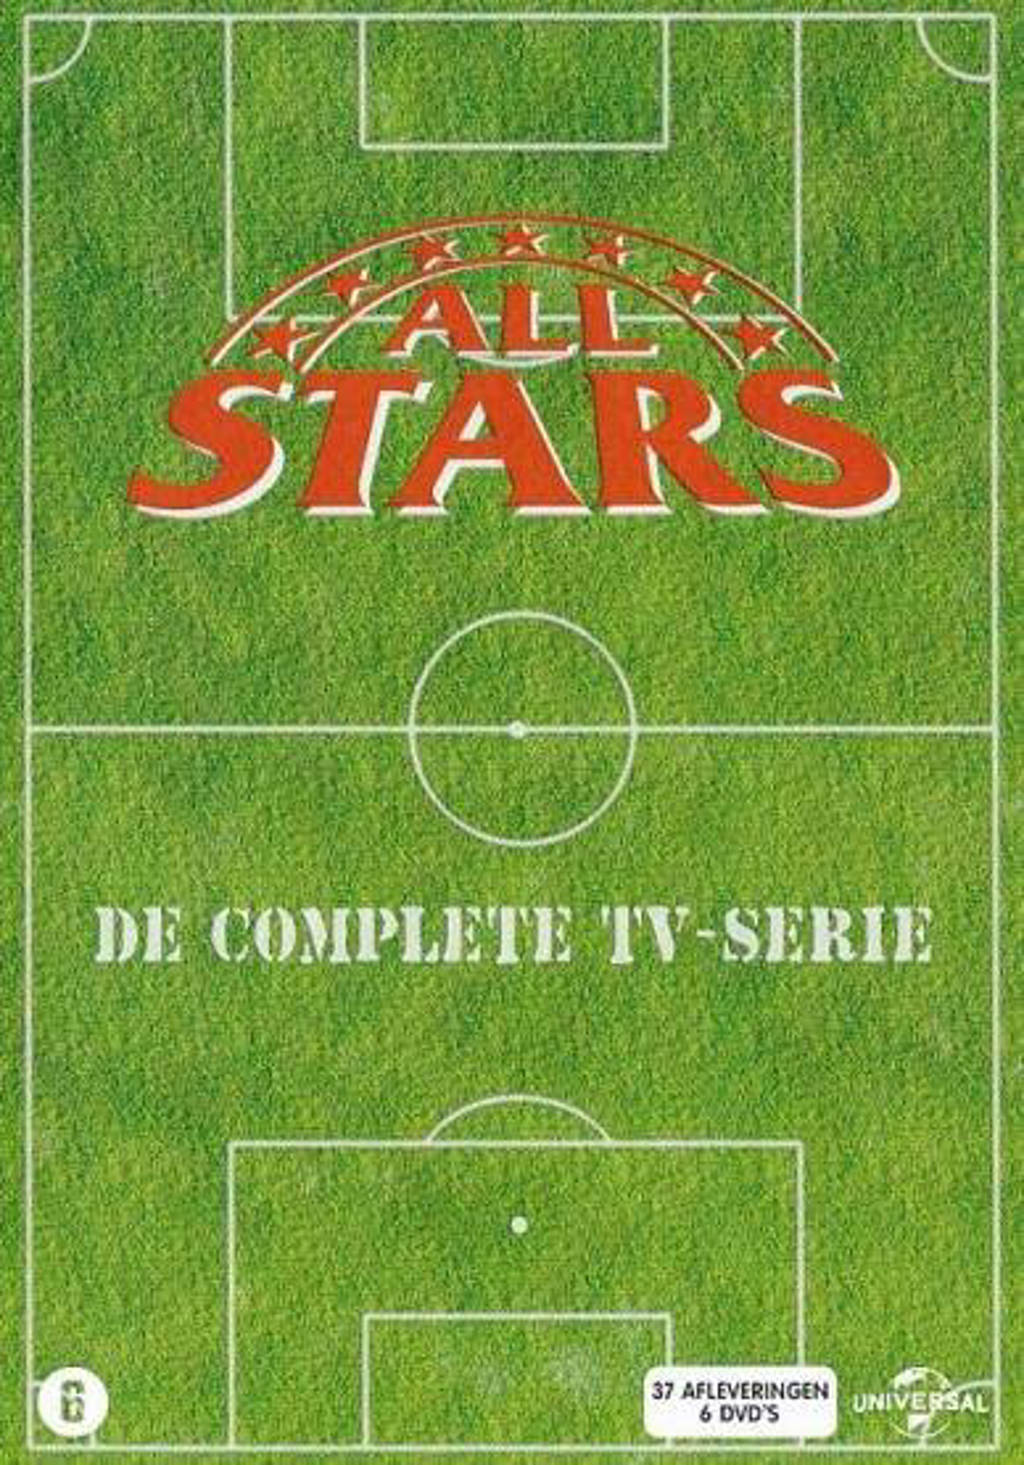 All stars - Complete serie (DVD)